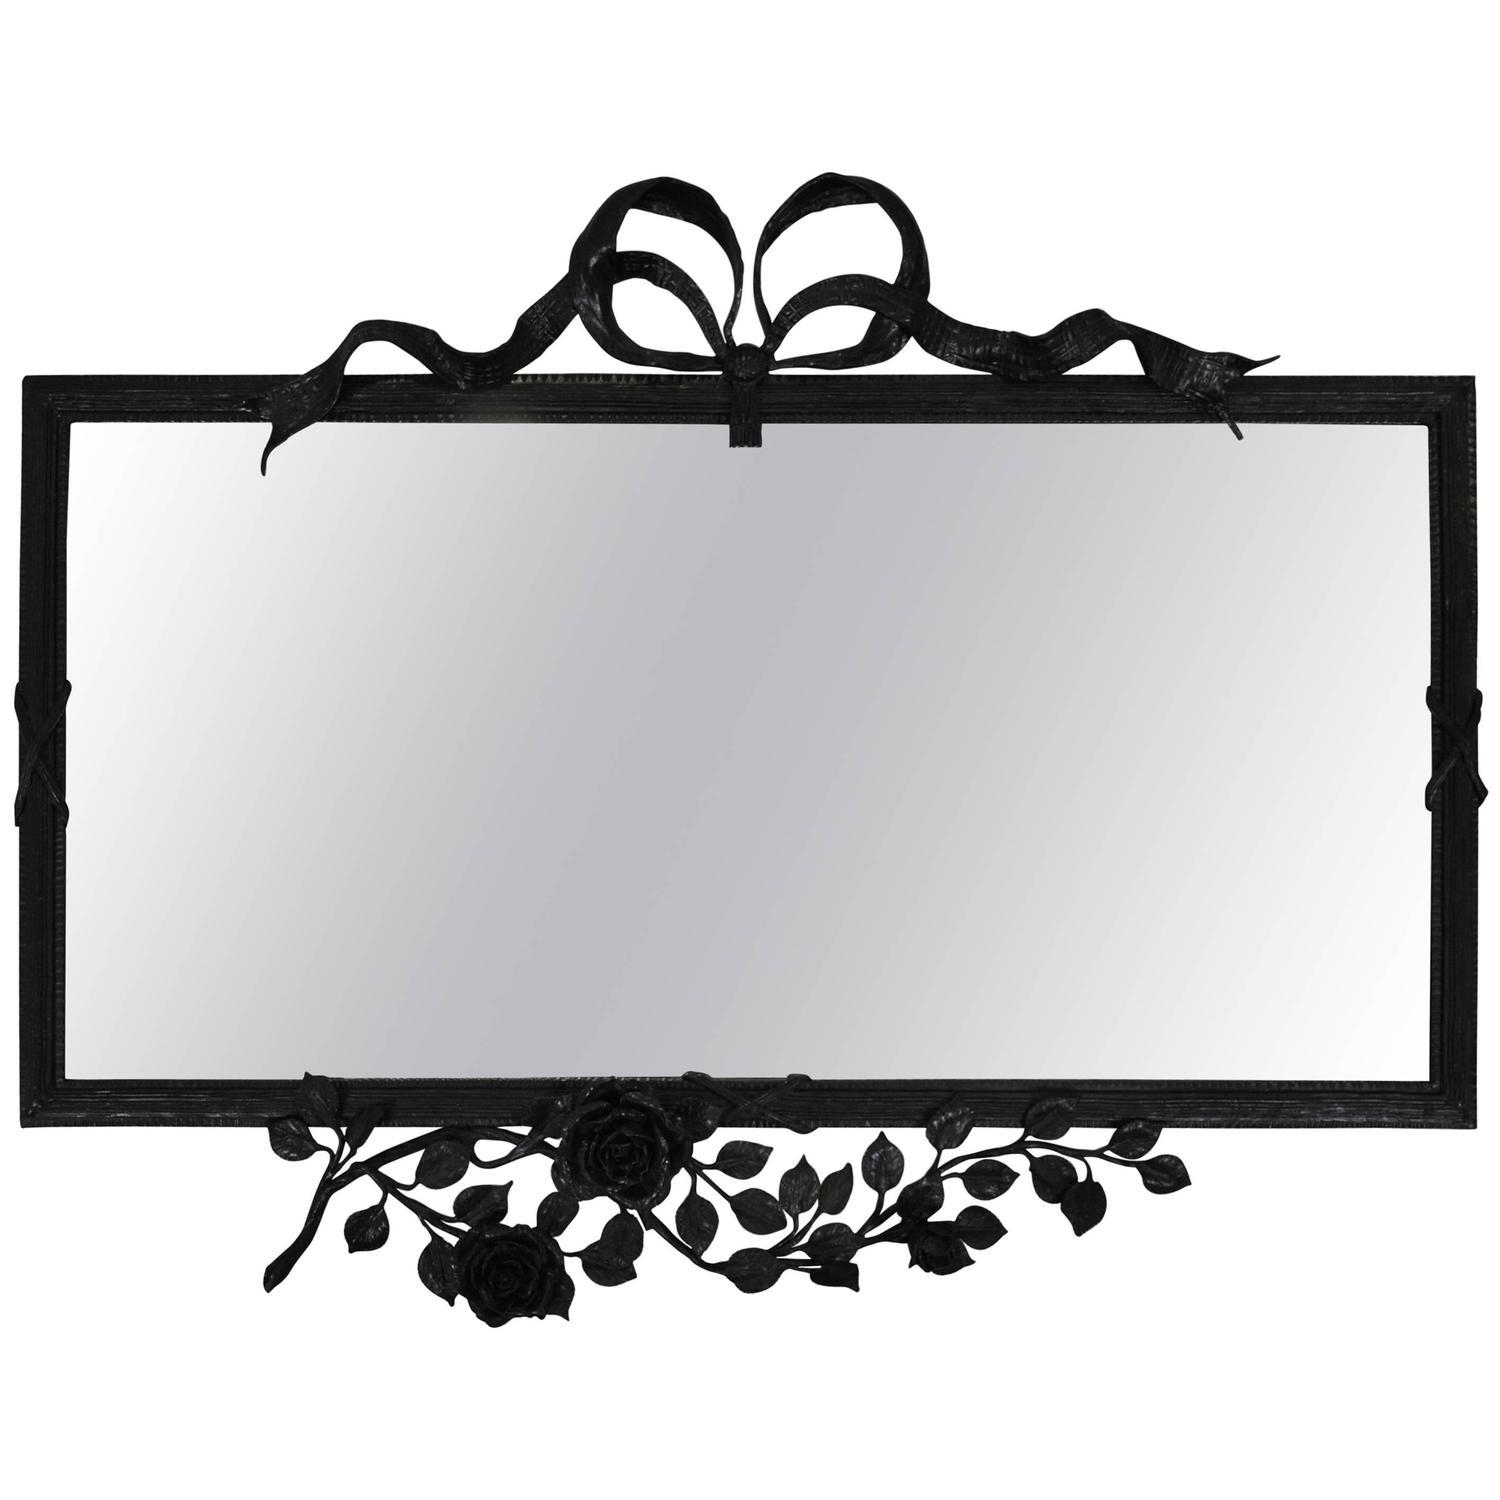 Wrought Iron Wall Mirrors – 73 For Sale At 1Stdibs With Rod Iron Mirrors (Image 20 of 20)